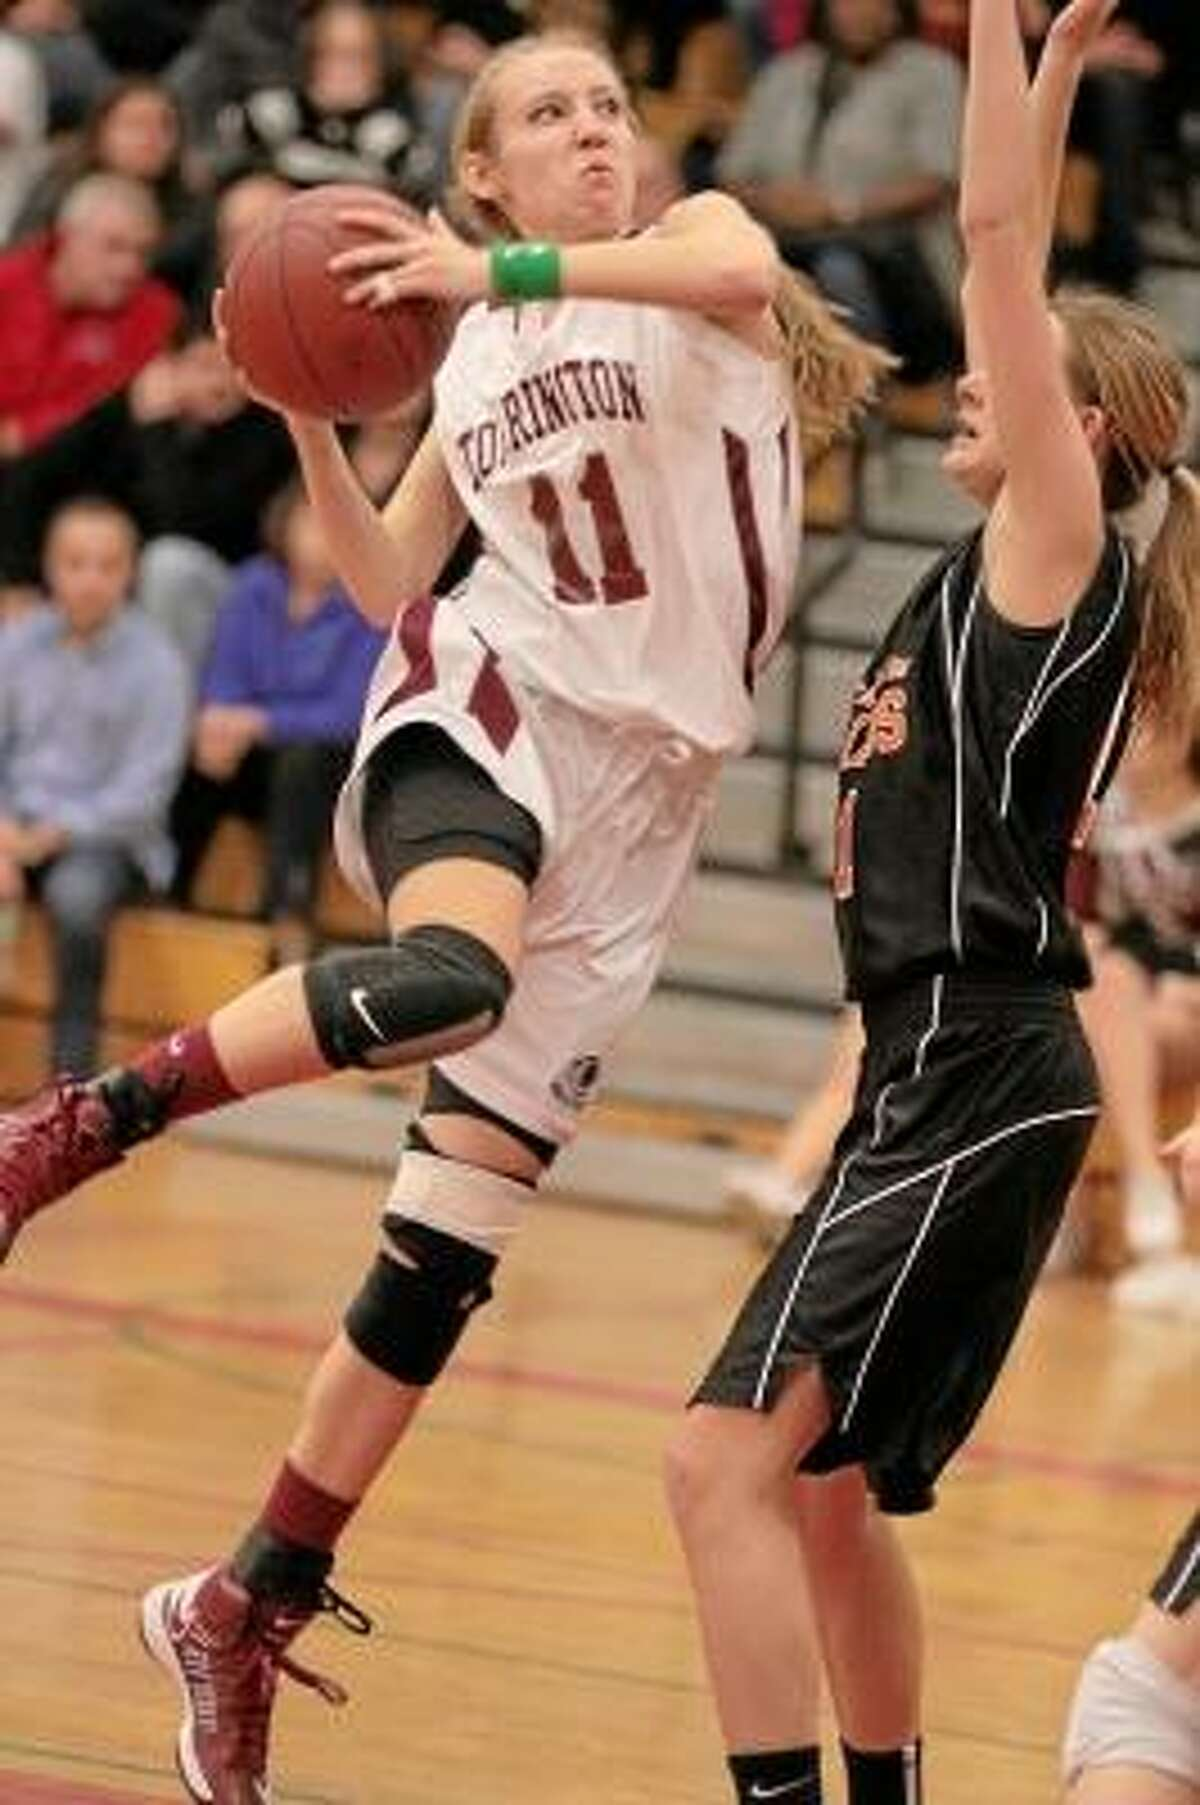 Nicole Kozlak of Torrington drives to the basket in her team's victory over Watertown Friday night. Photo by Marianne Killackey/Special to Register Citizen